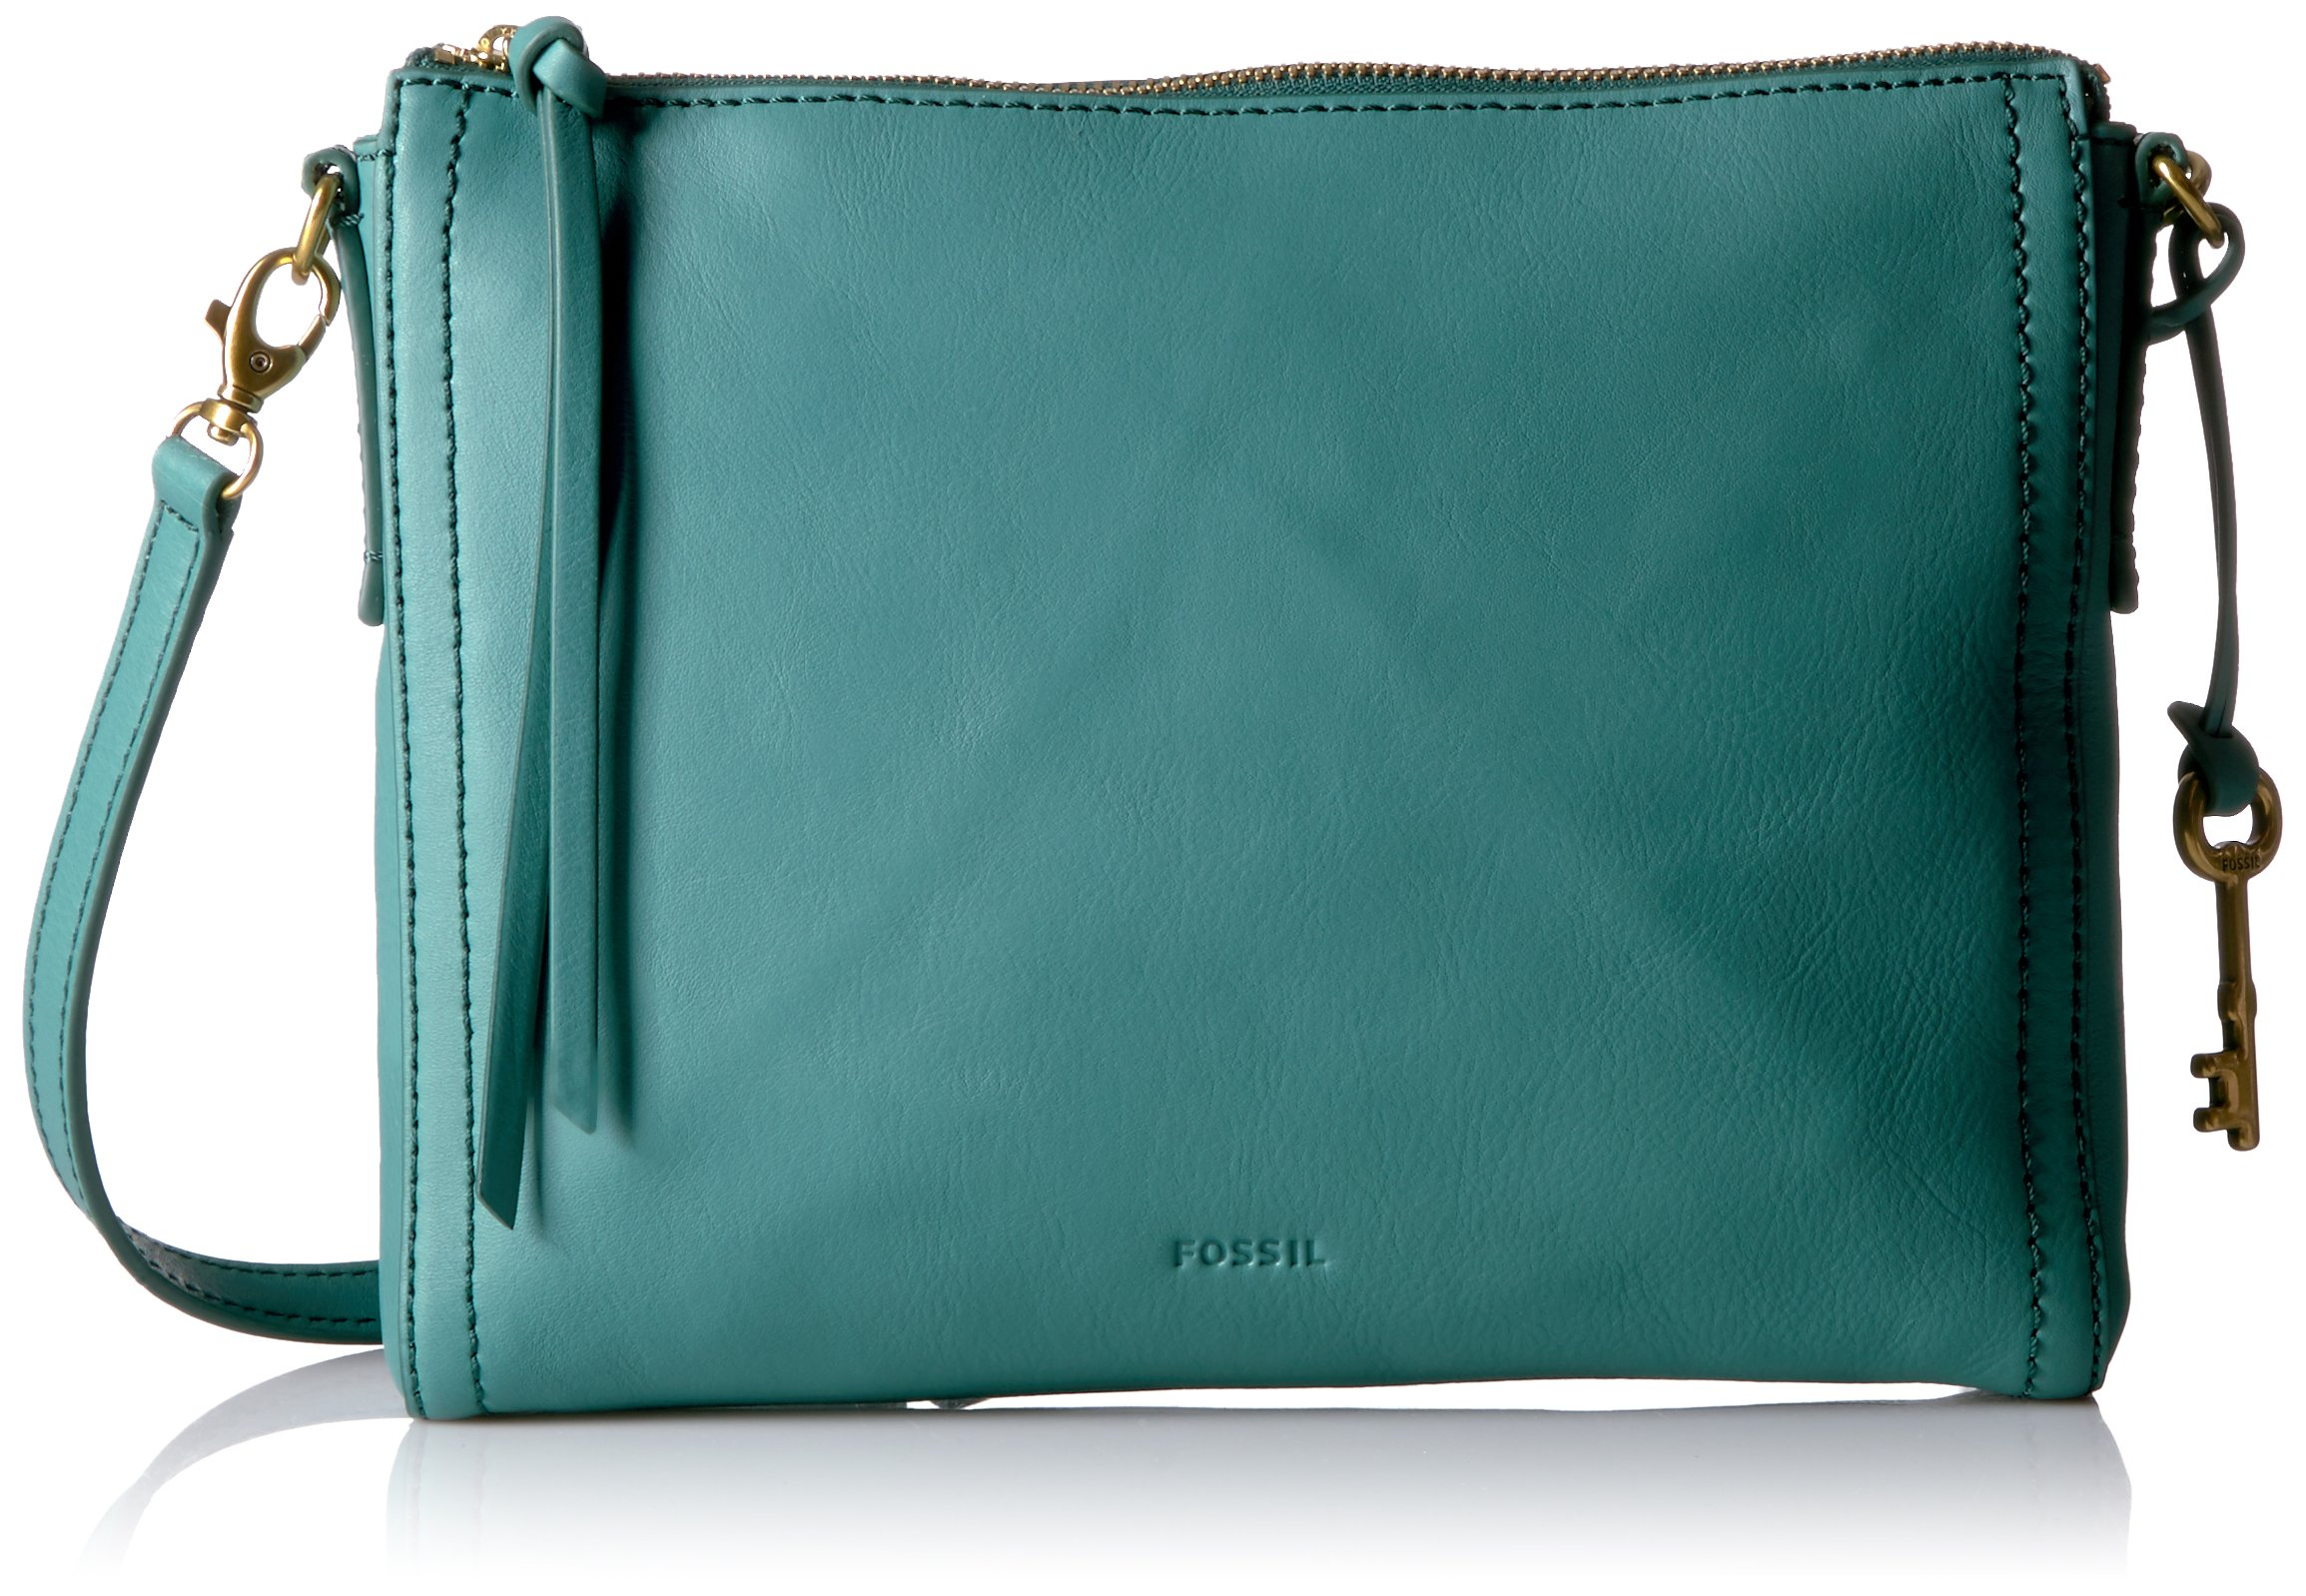 Fossil Emma Ew Crossbody, Teal Green